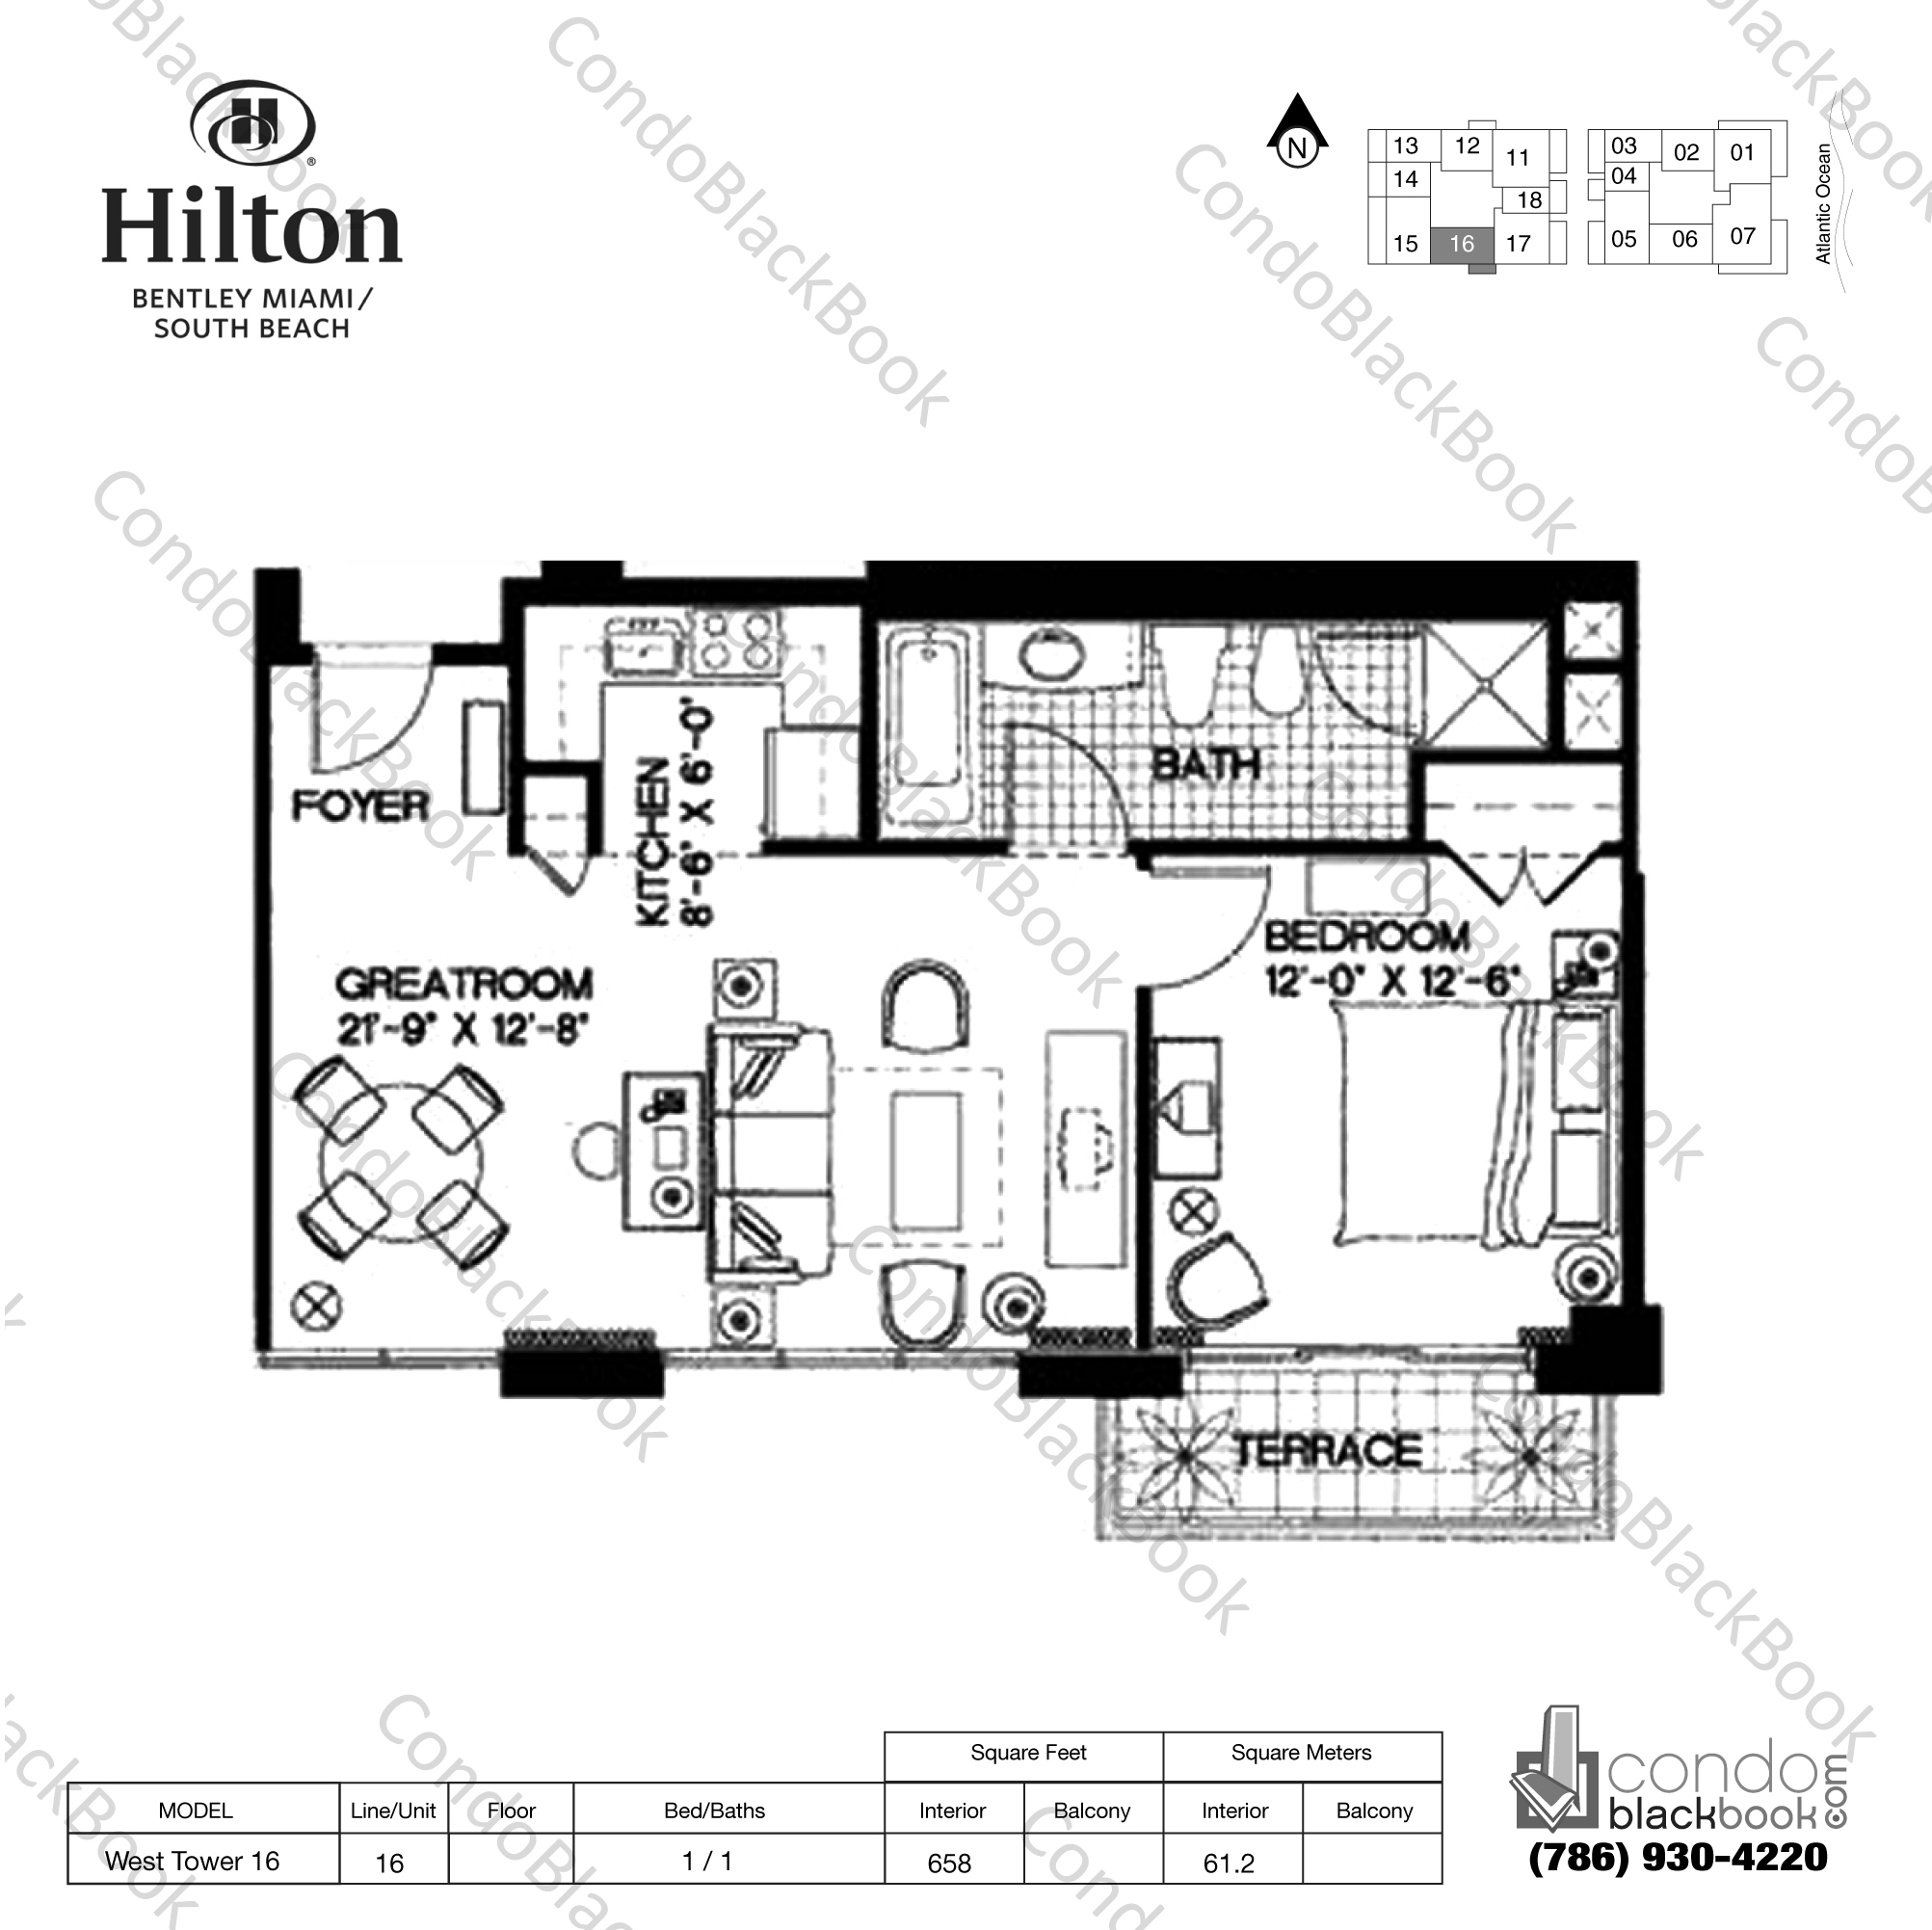 Floor plan for Bentley Beach Hilton South Beach Miami Beach, model West Tower 16, line 16,  1 / 1 bedrooms, 658 sq ft